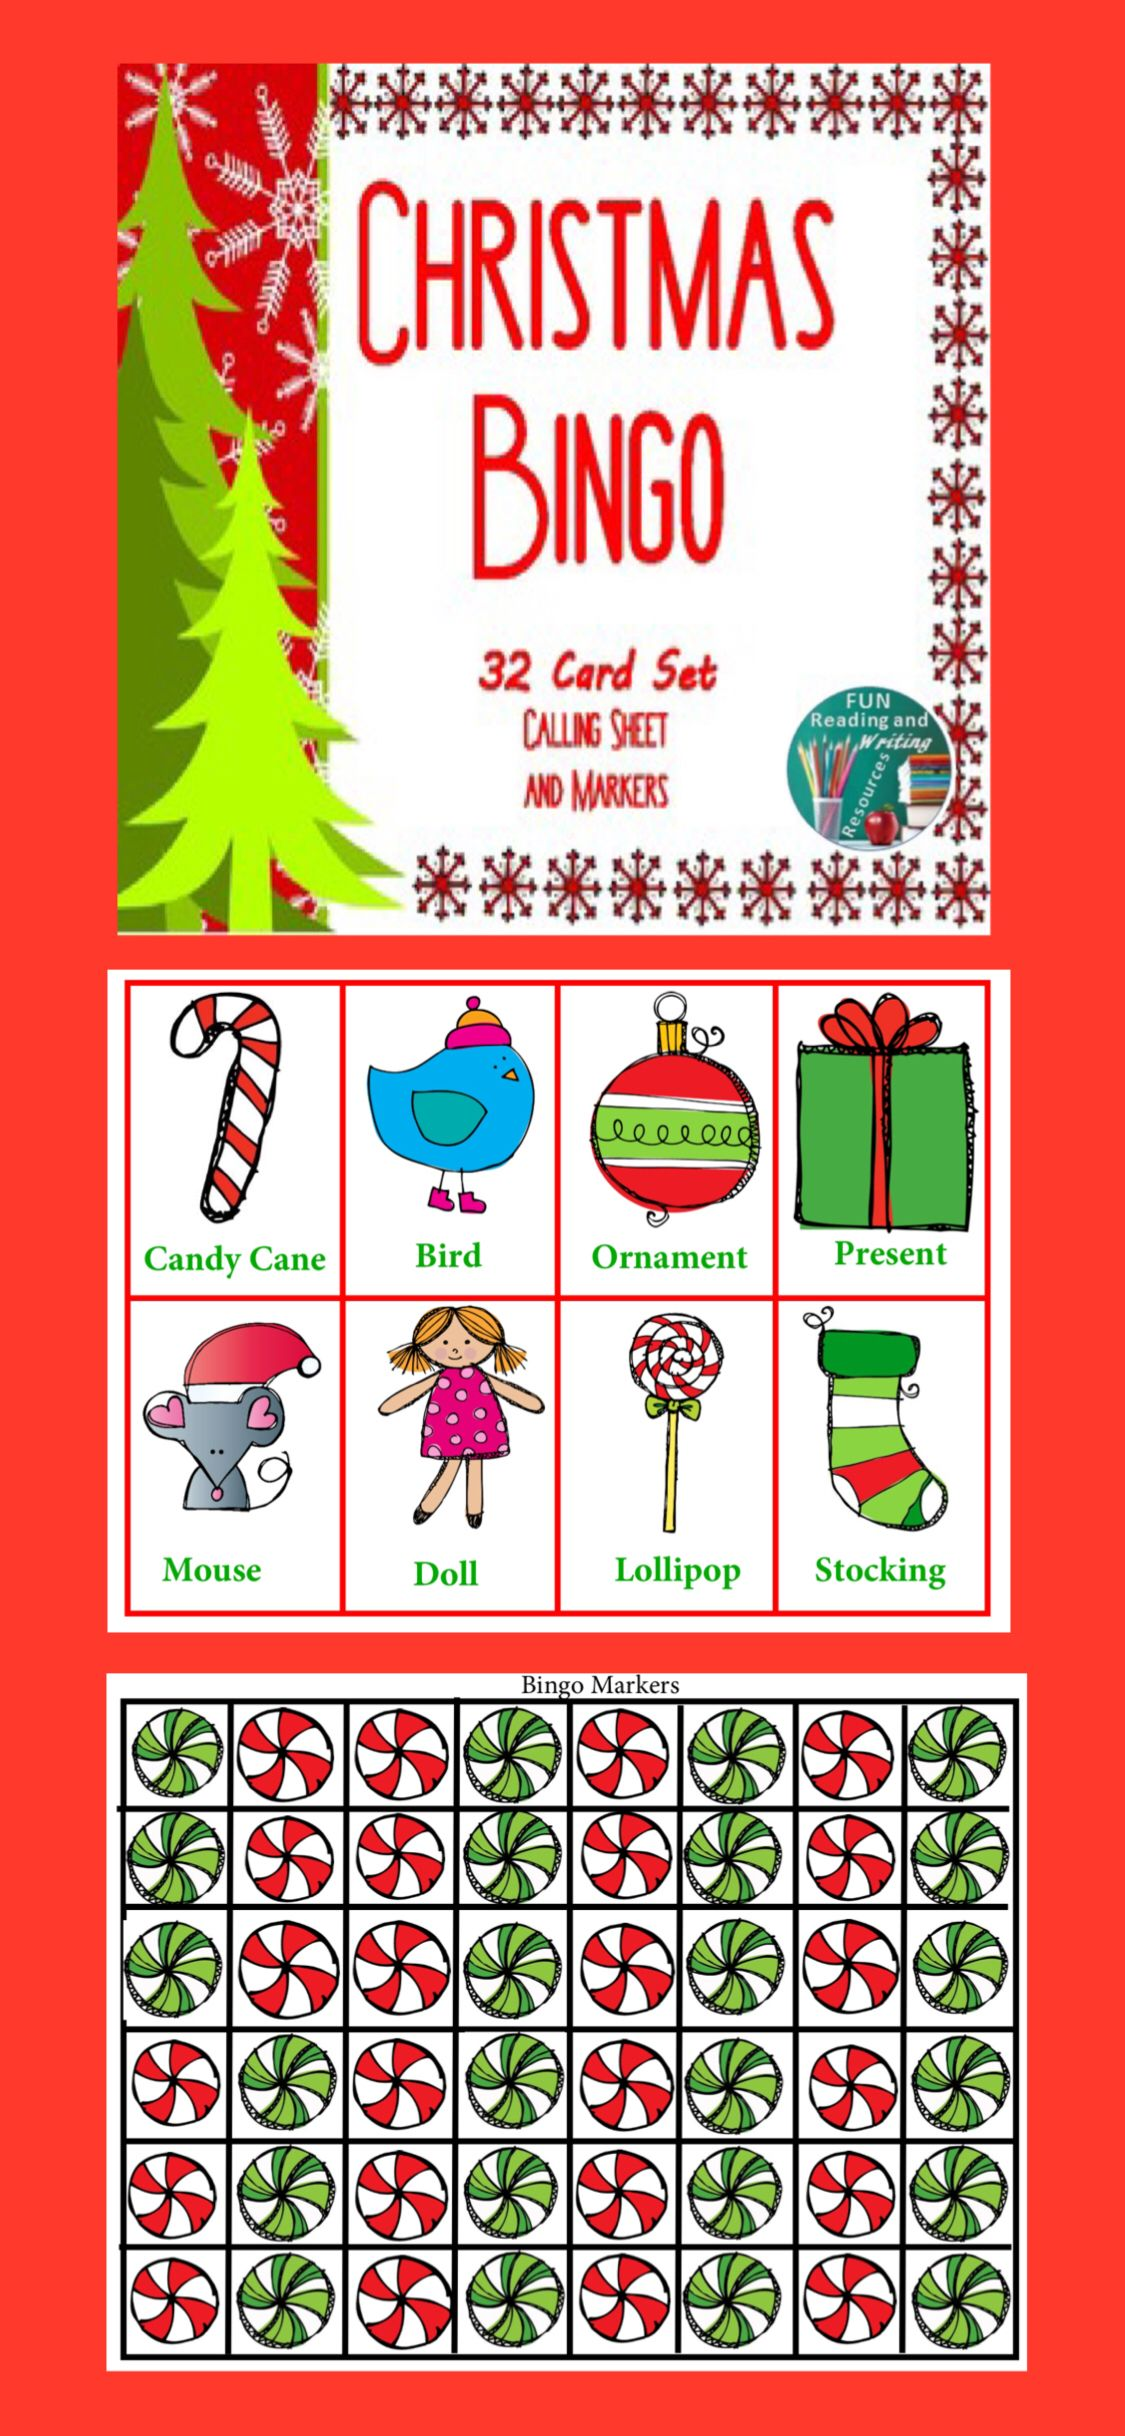 Christmas Bingo 32 Cards With Call Sheet And Markers